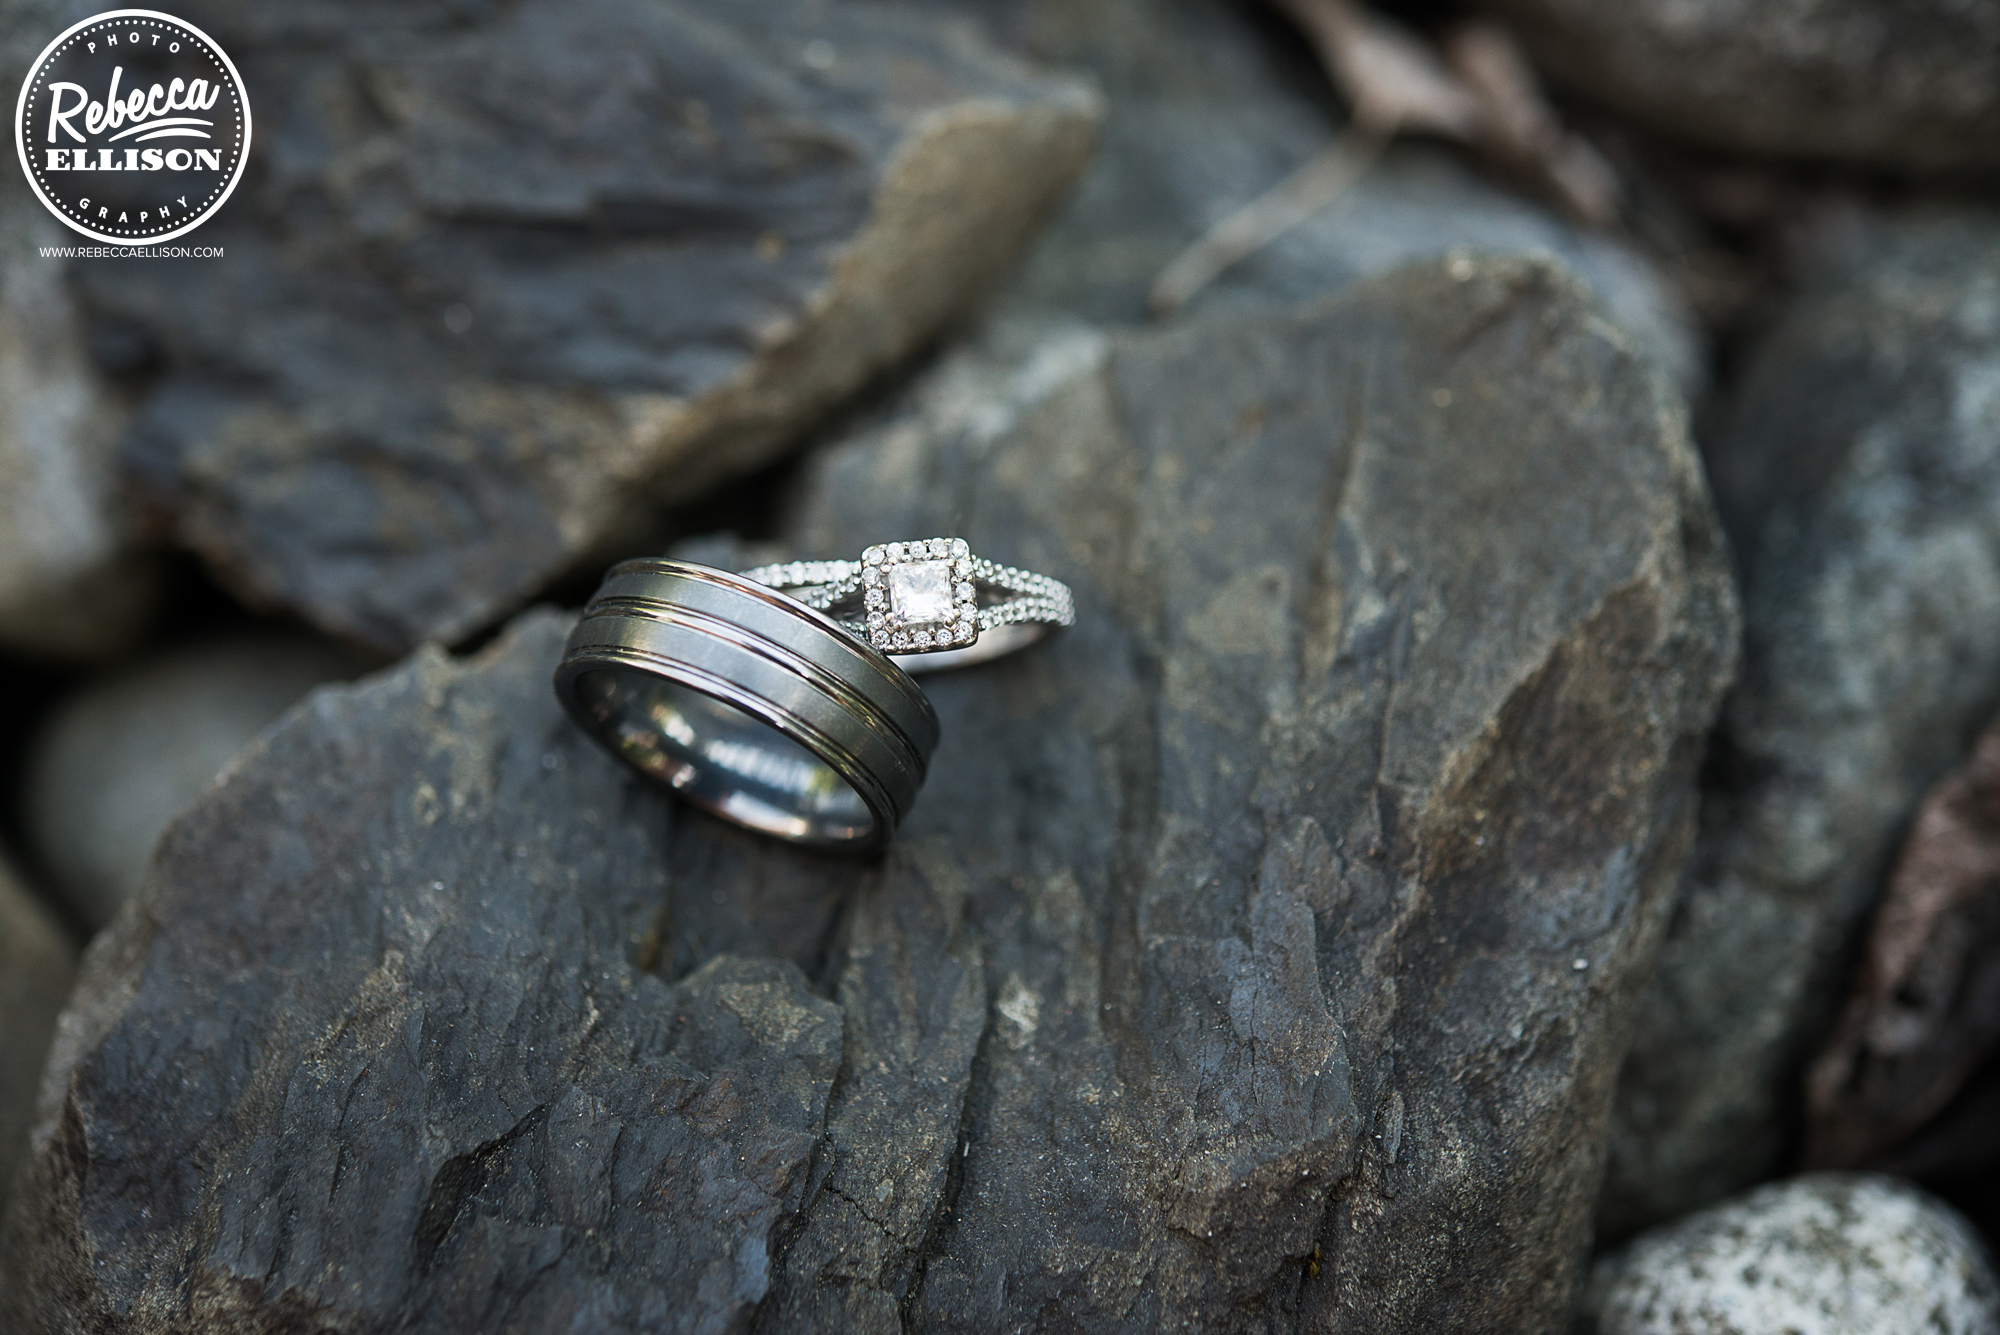 Wedding rings laying on rocks photographed by Seattle wedding photographer Rebecca Ellison